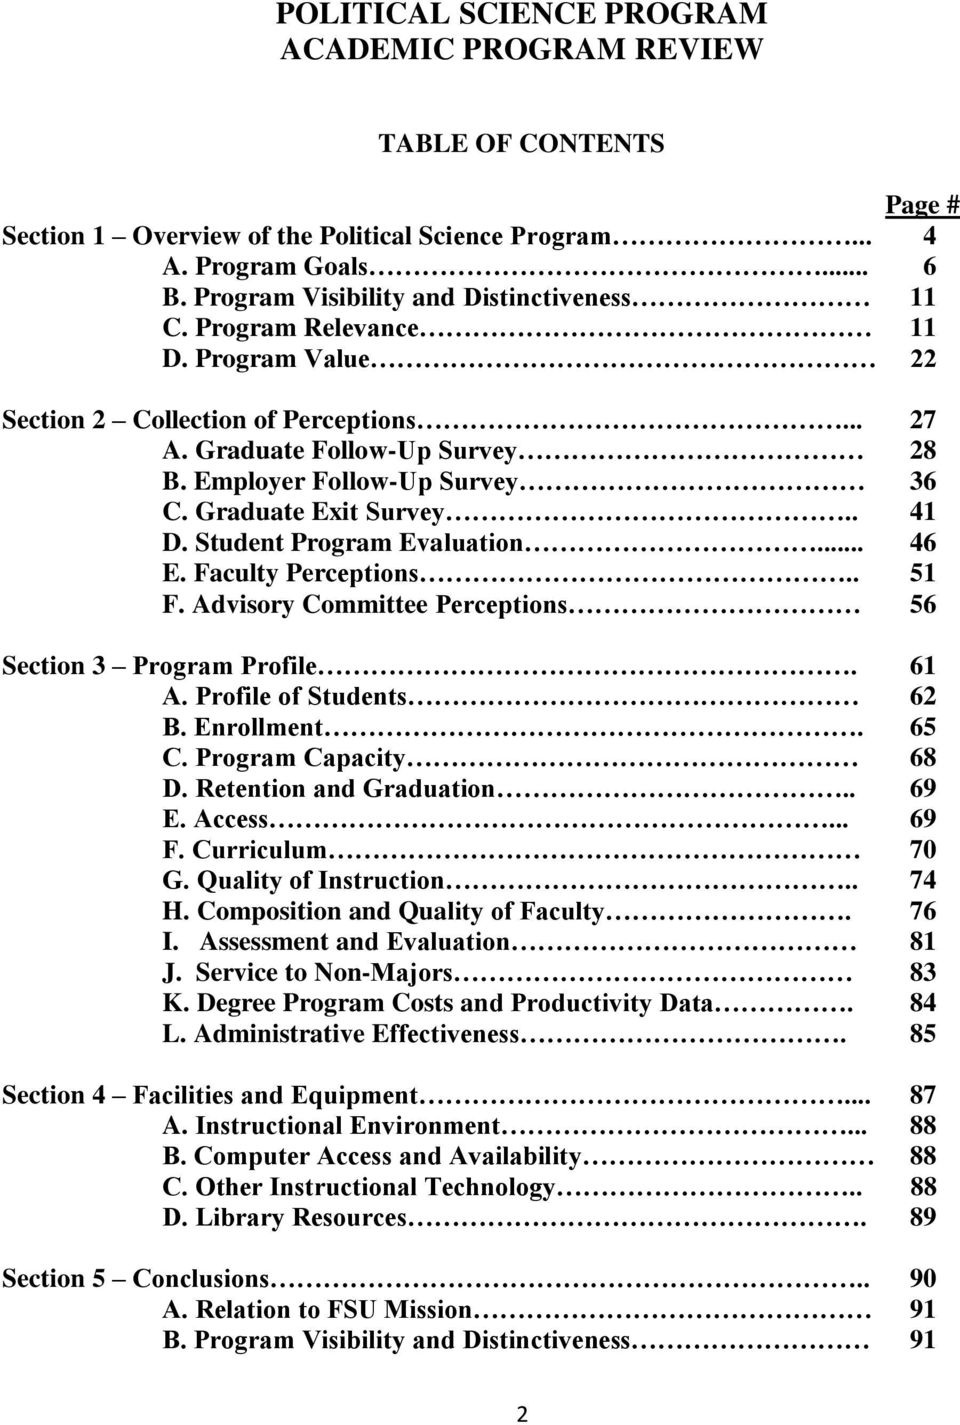 Graduate Exit Survey.. 41 D. Student Program Evaluation... 46 E. Faculty Perceptions.. 51 F. Advisory Committee Perceptions 56 Section 3 Program Profile. 61 A. Profile of Students 62 B. Enrollment.